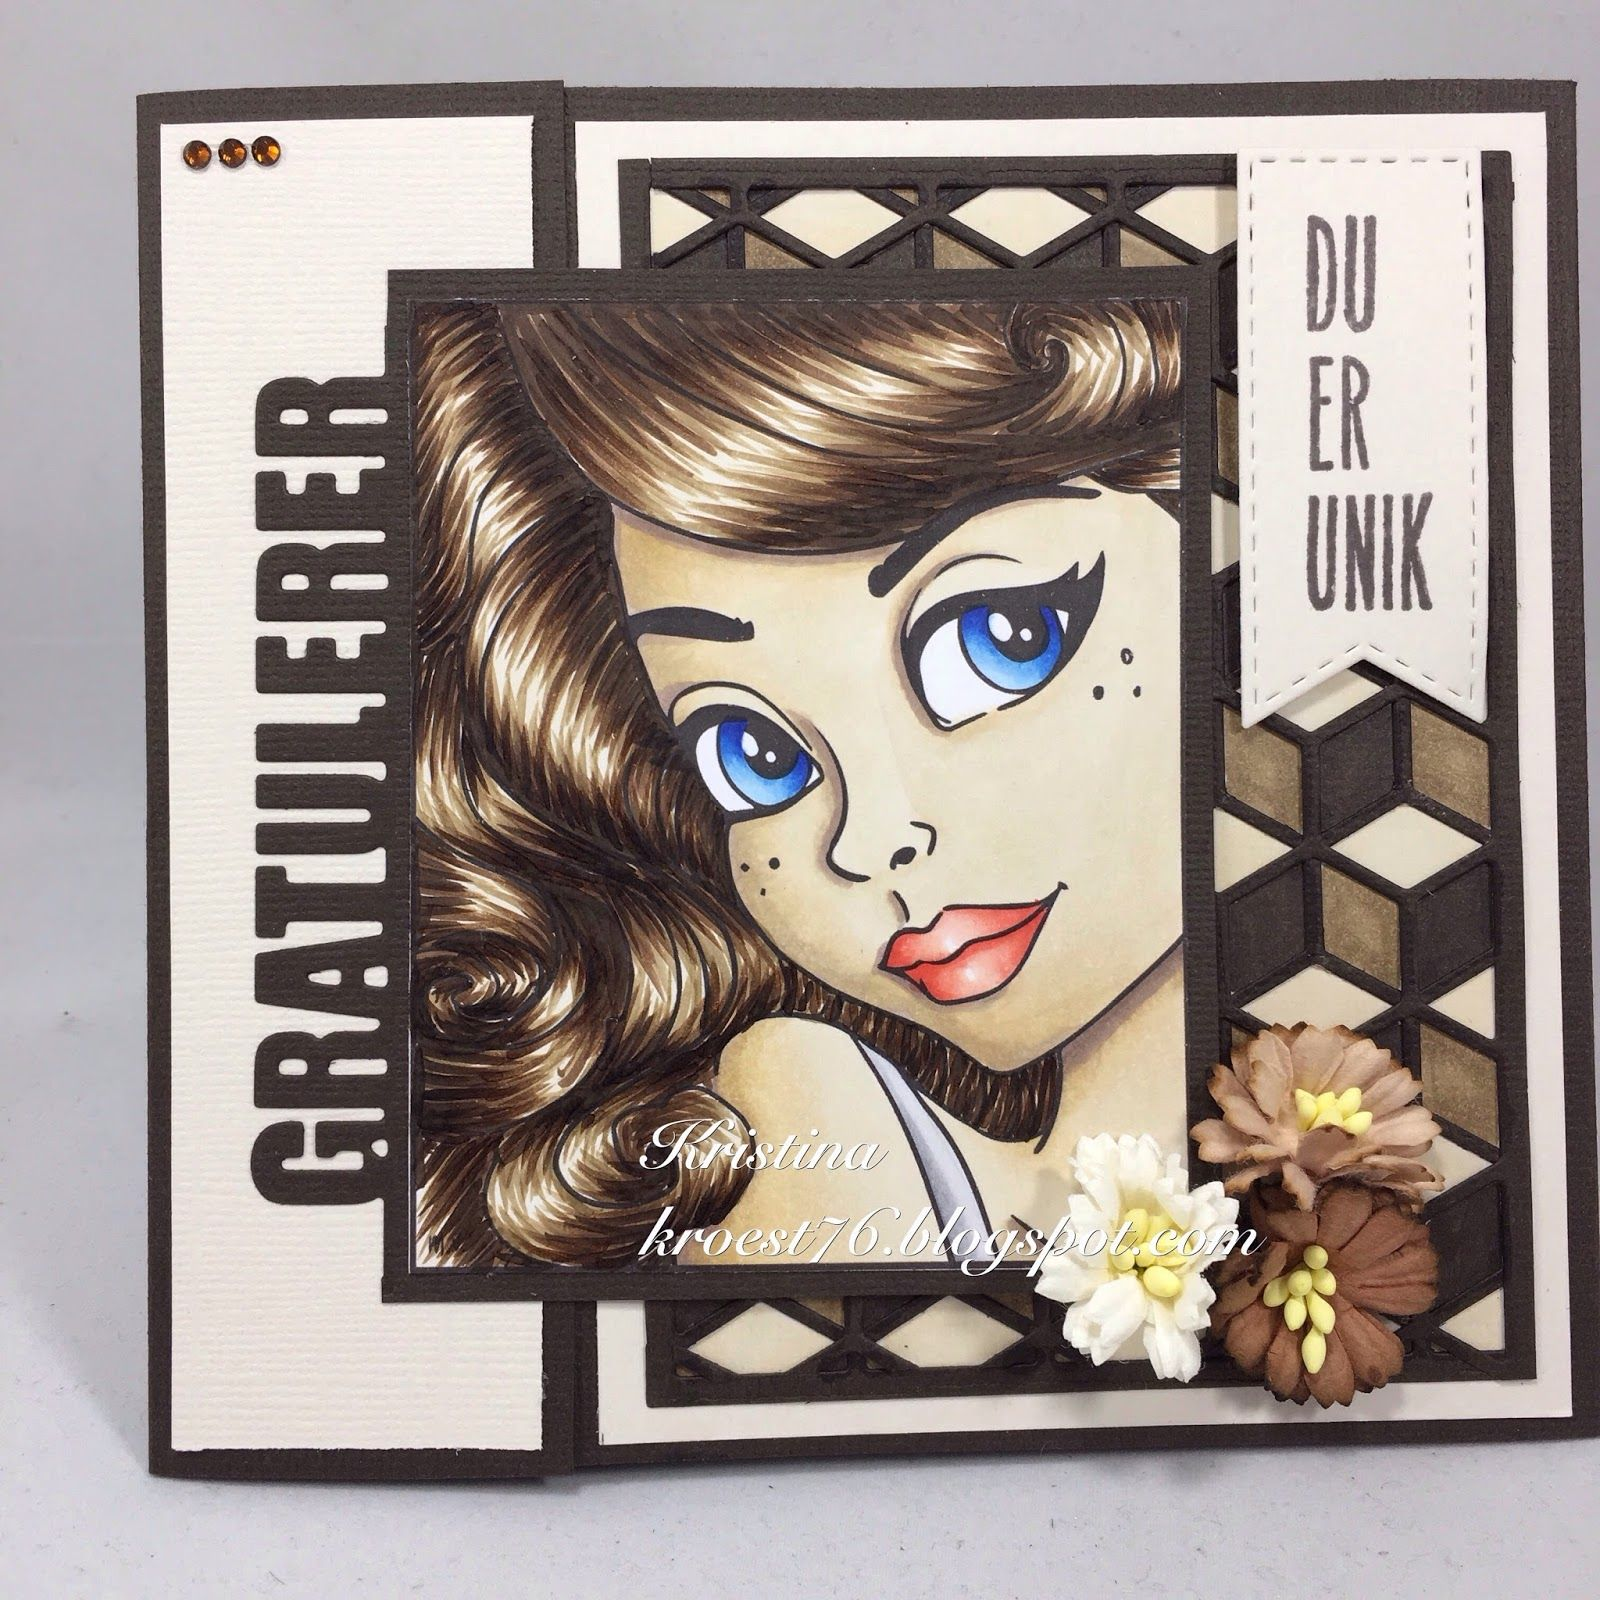 Copic Marker Norge, Copic Markers, Make it Crafty, April, Kort & Godt